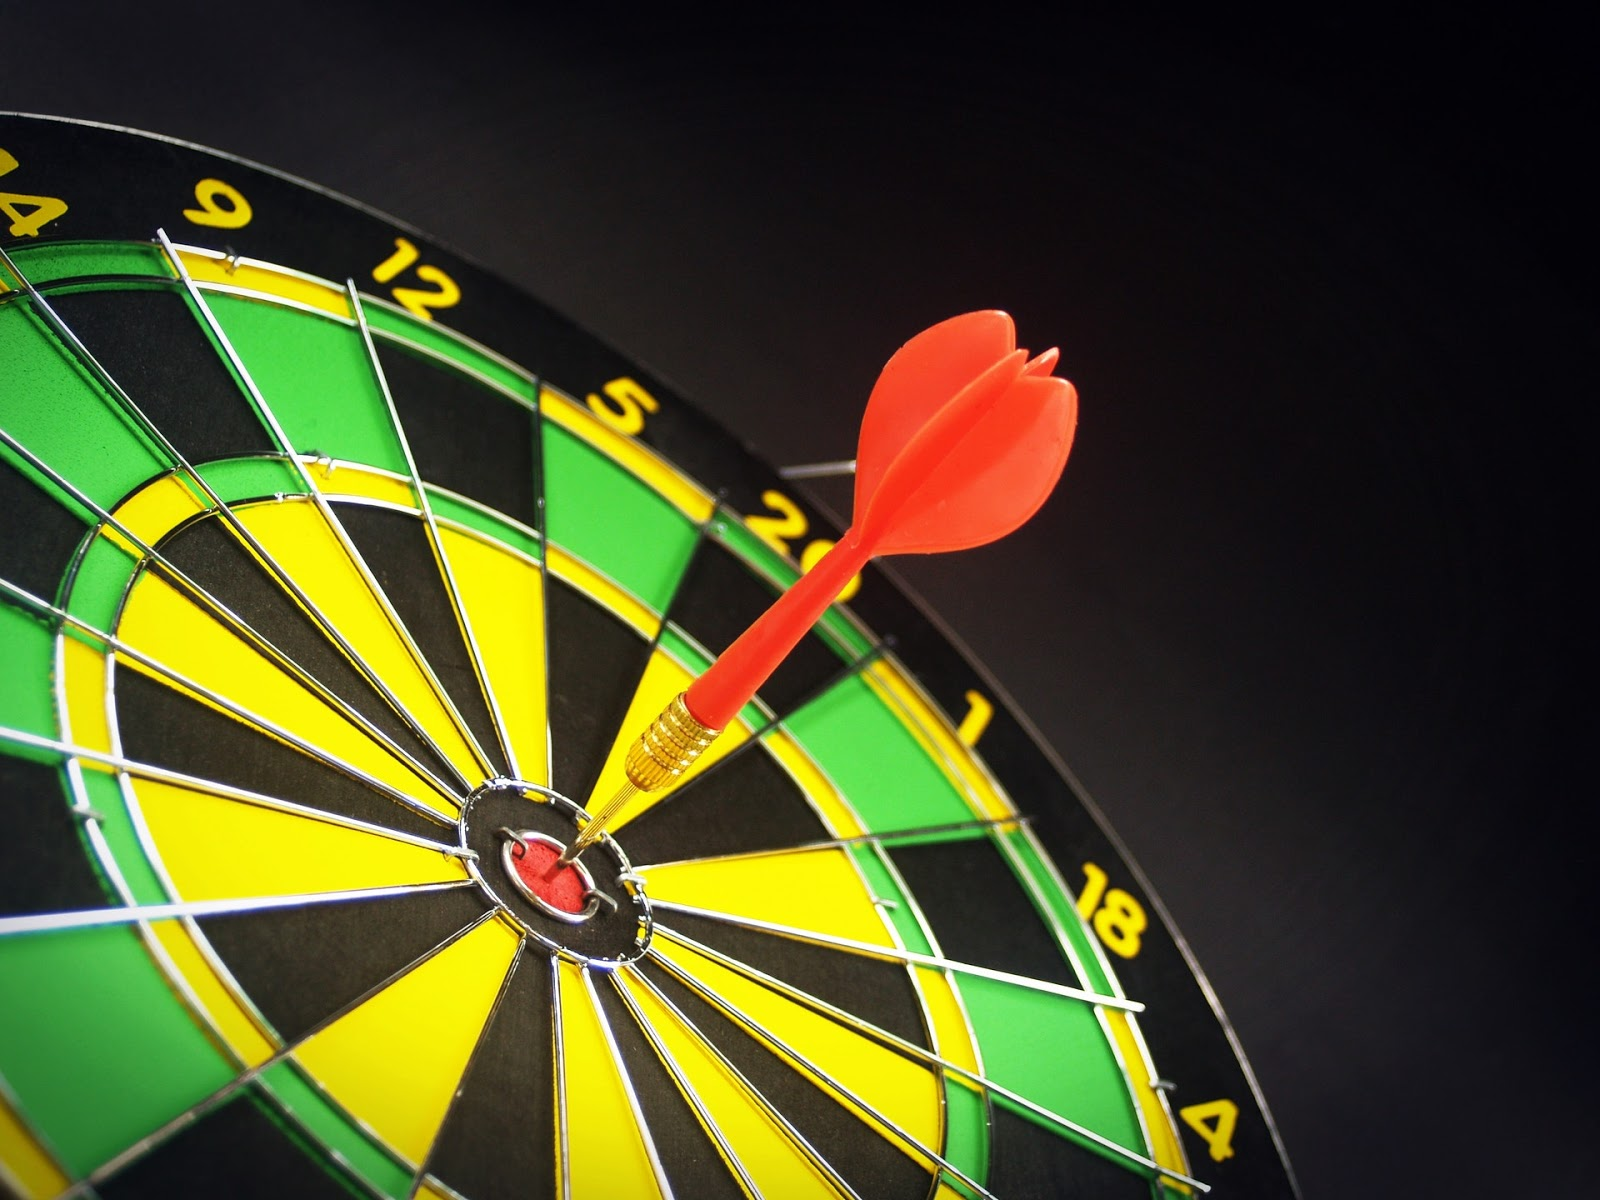 black and yellow dartboard with red dart